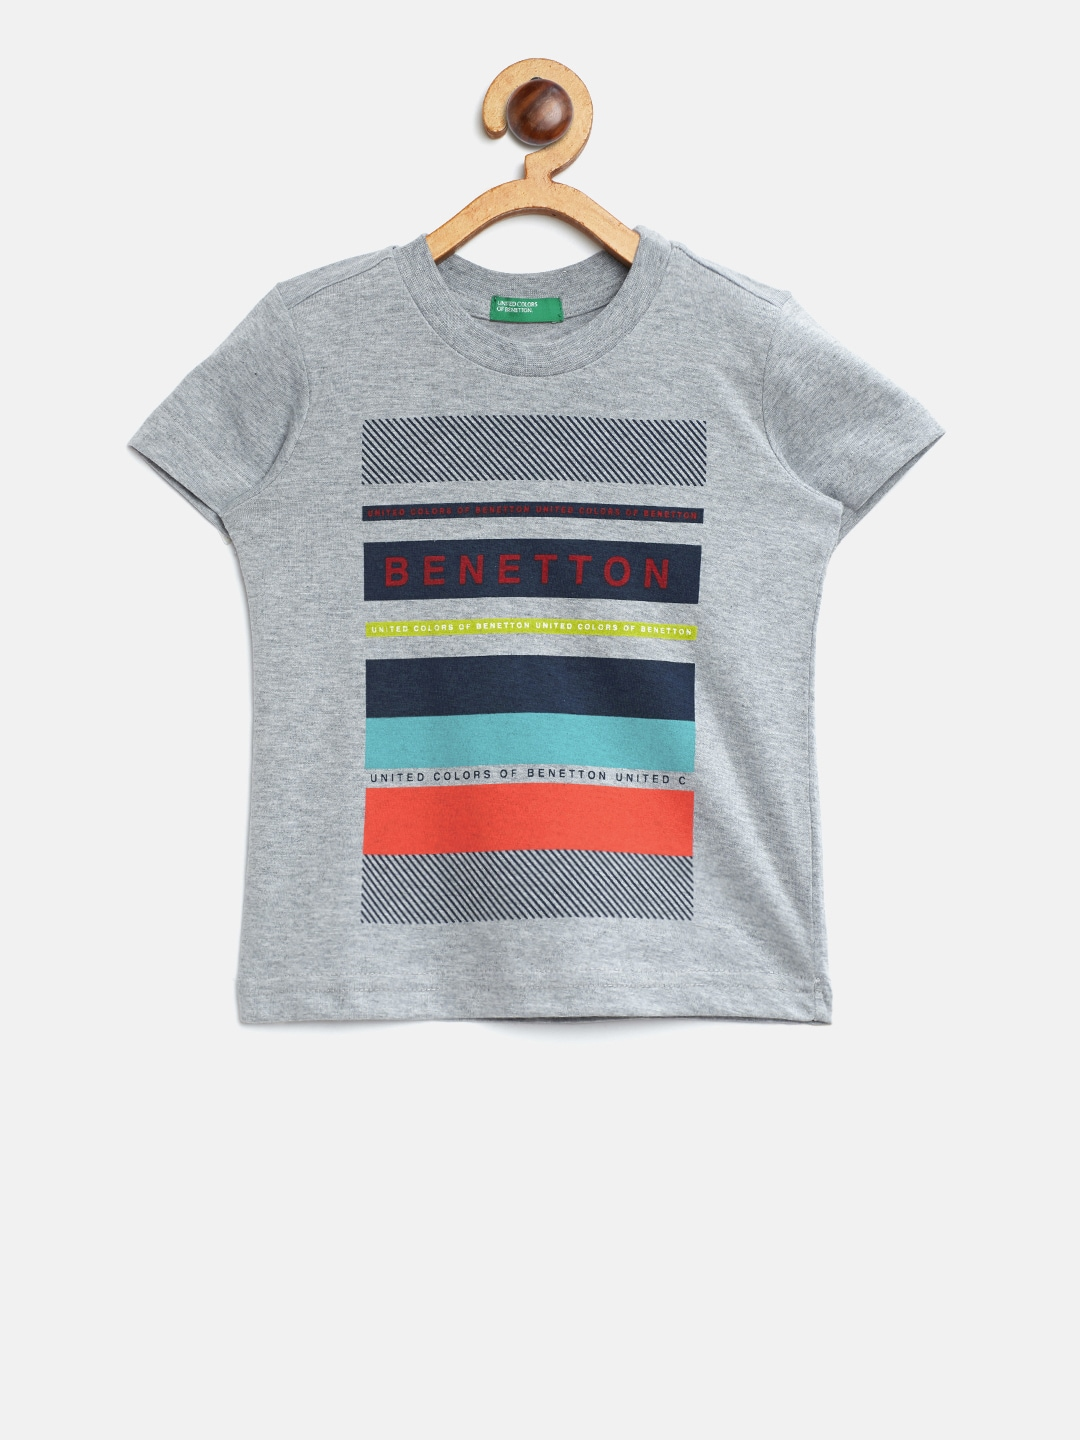 7ae66fdedc5 United Colors Of United Colors Of Benetton Supra Gucci Deo - Buy United  Colors Of United Colors Of Benetton Supra Gucci Deo online in India